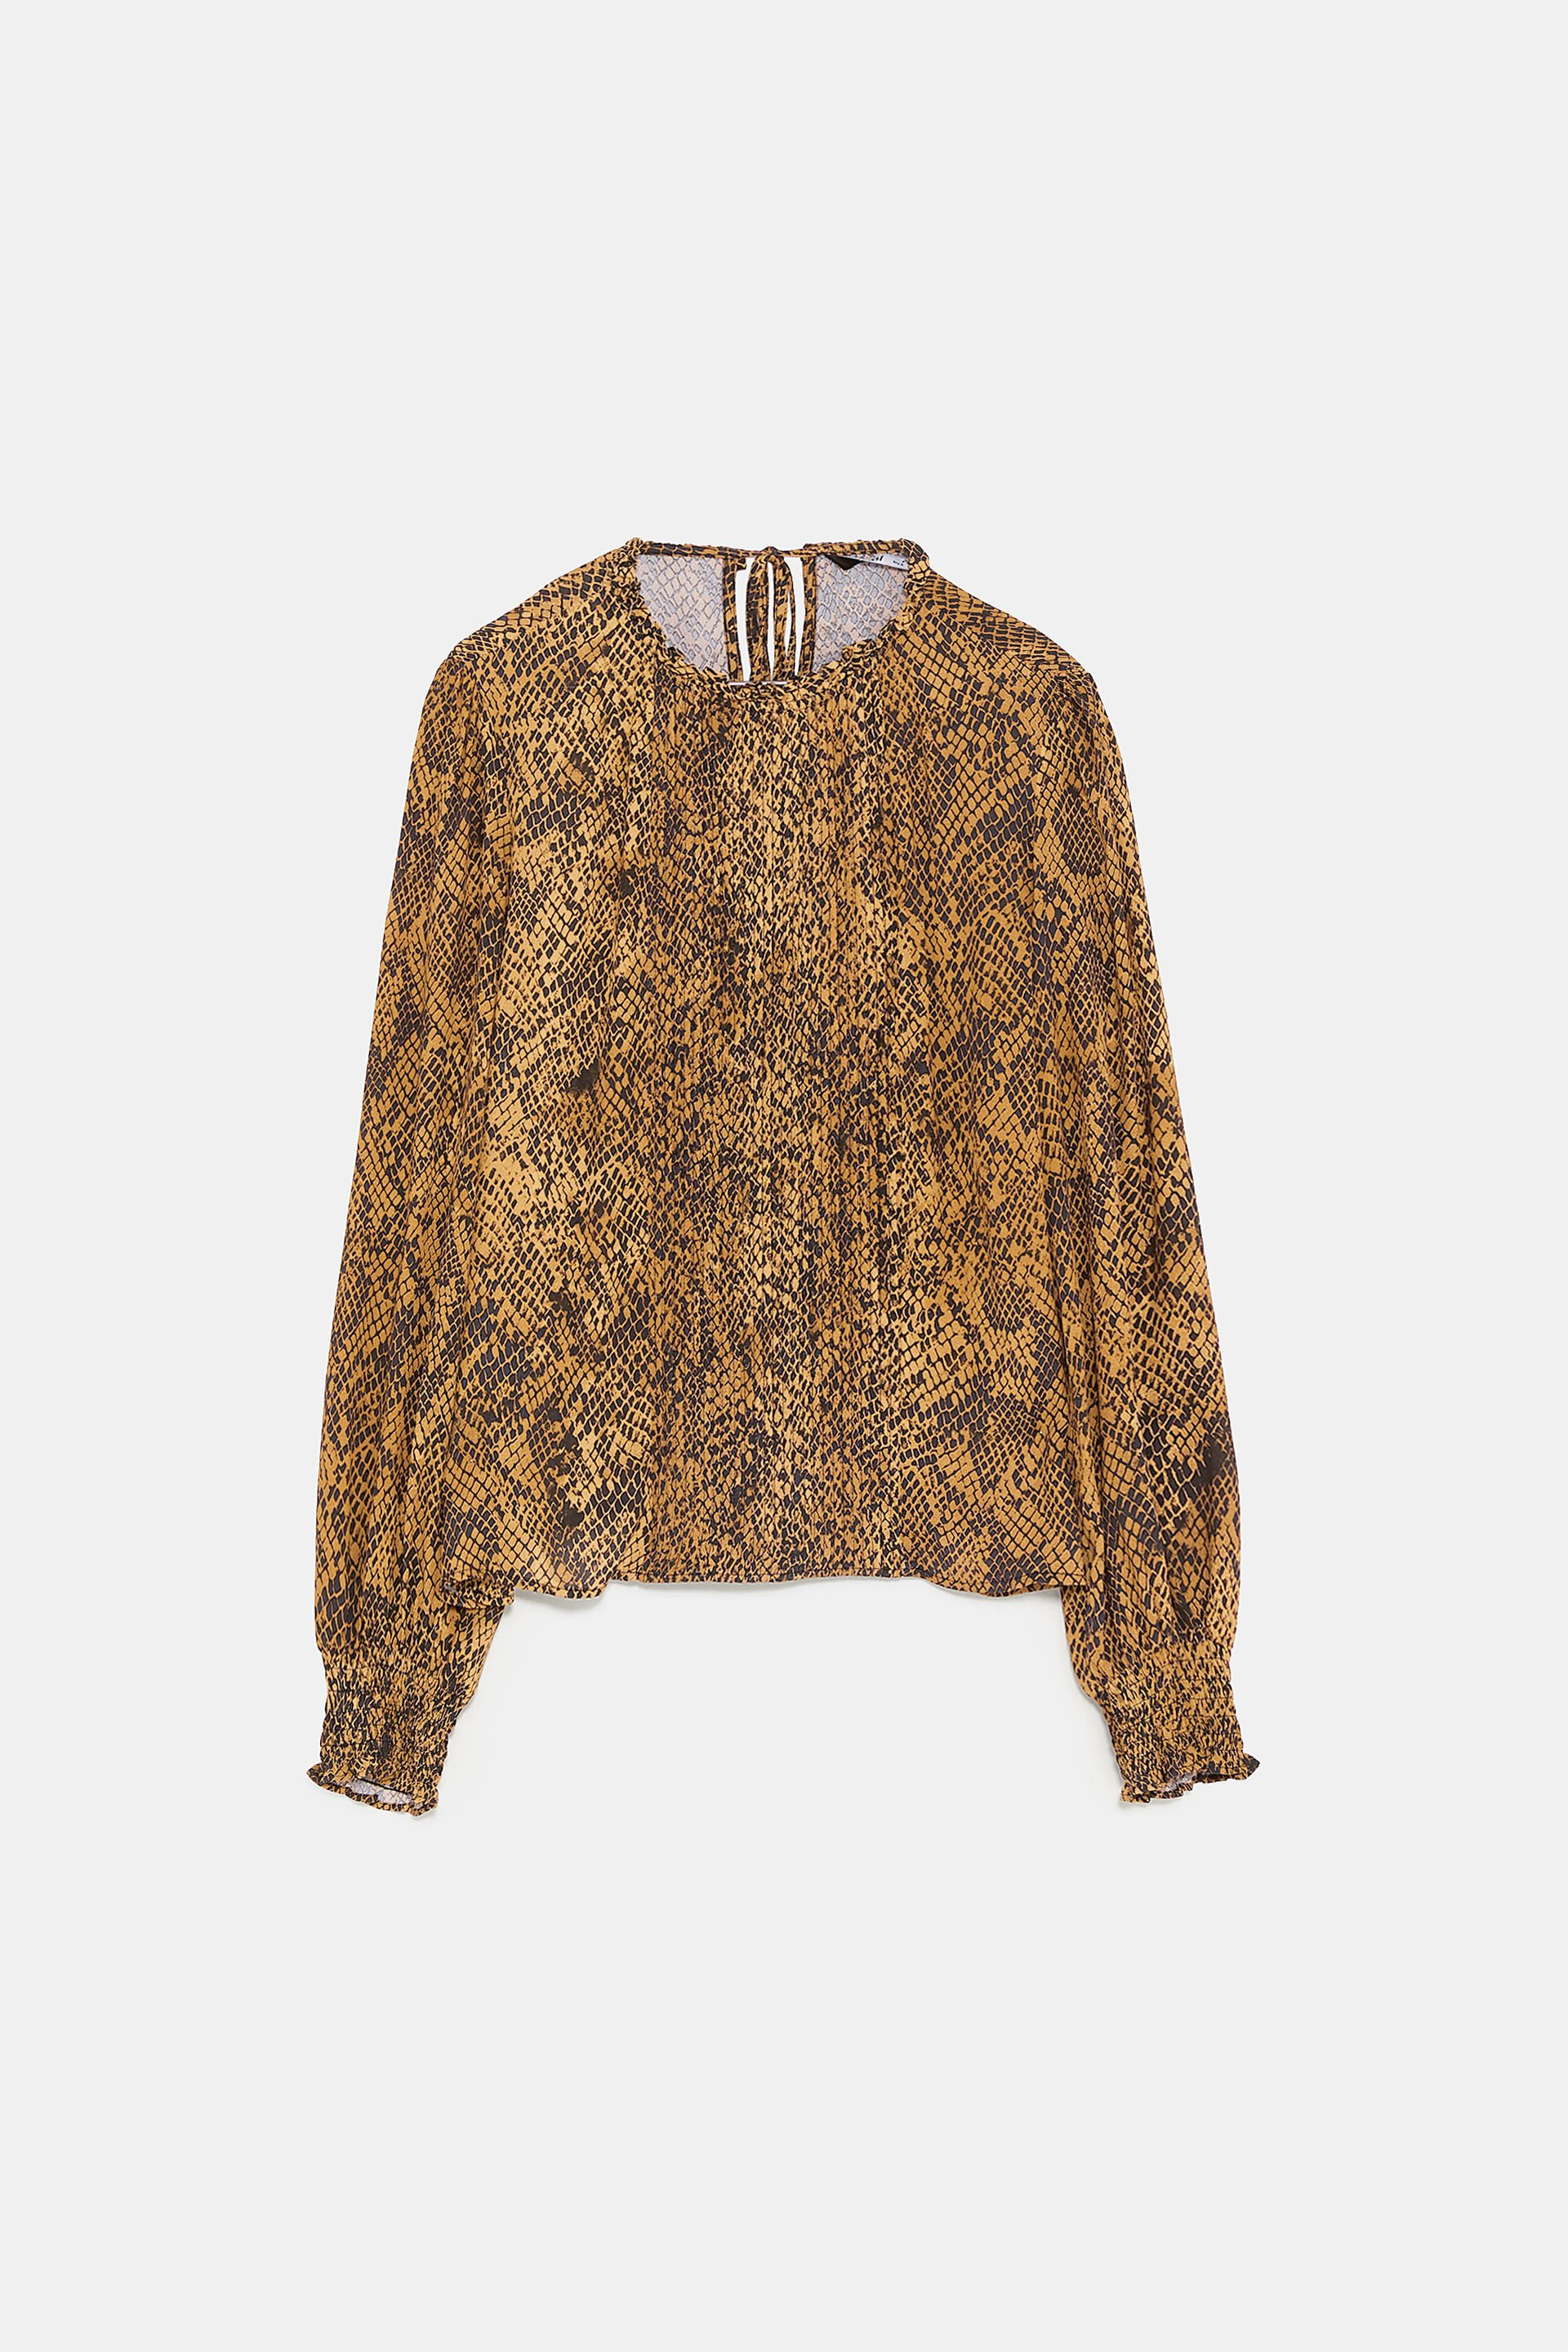 ANIMAL PRINT BLOUSE - View All-SHIRTS | BLOUSES-WOMAN | ZARA United States